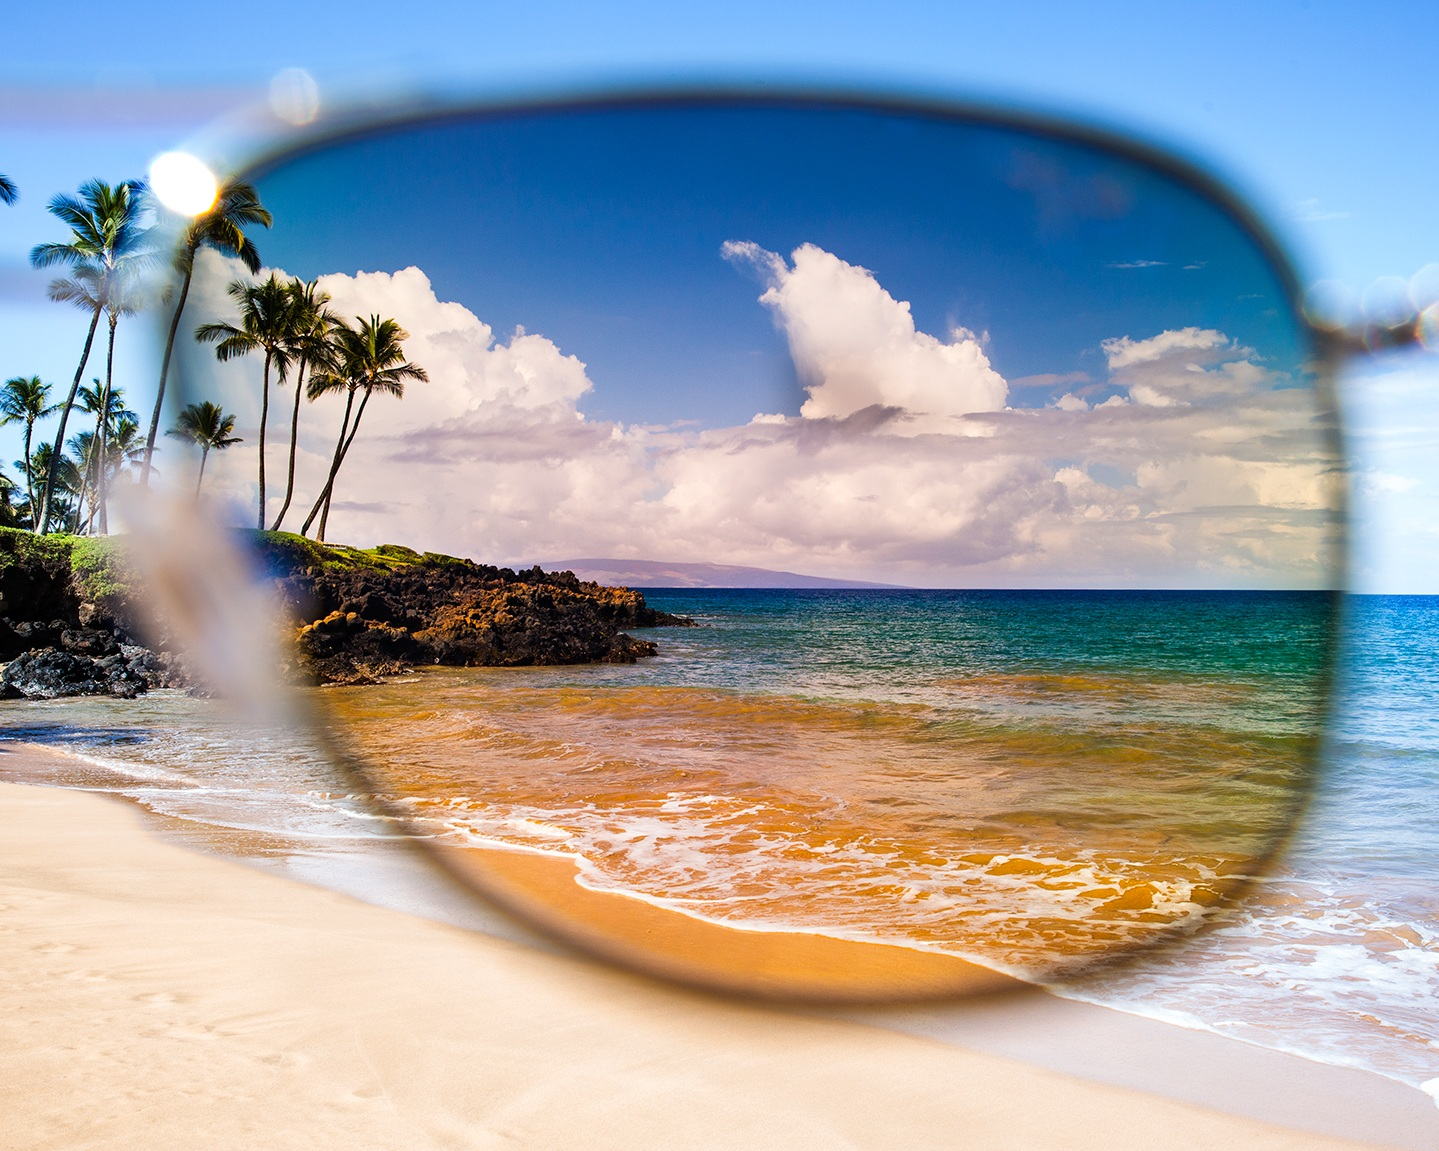 Polarisation. - Prescription lenses can be made polarised, giving you the added benefit of eliminated glare from reflected light. We also stock loads of polarised sunglasses from Maui Jim, Oakley, Ray-Ban, and Mont Blanc.